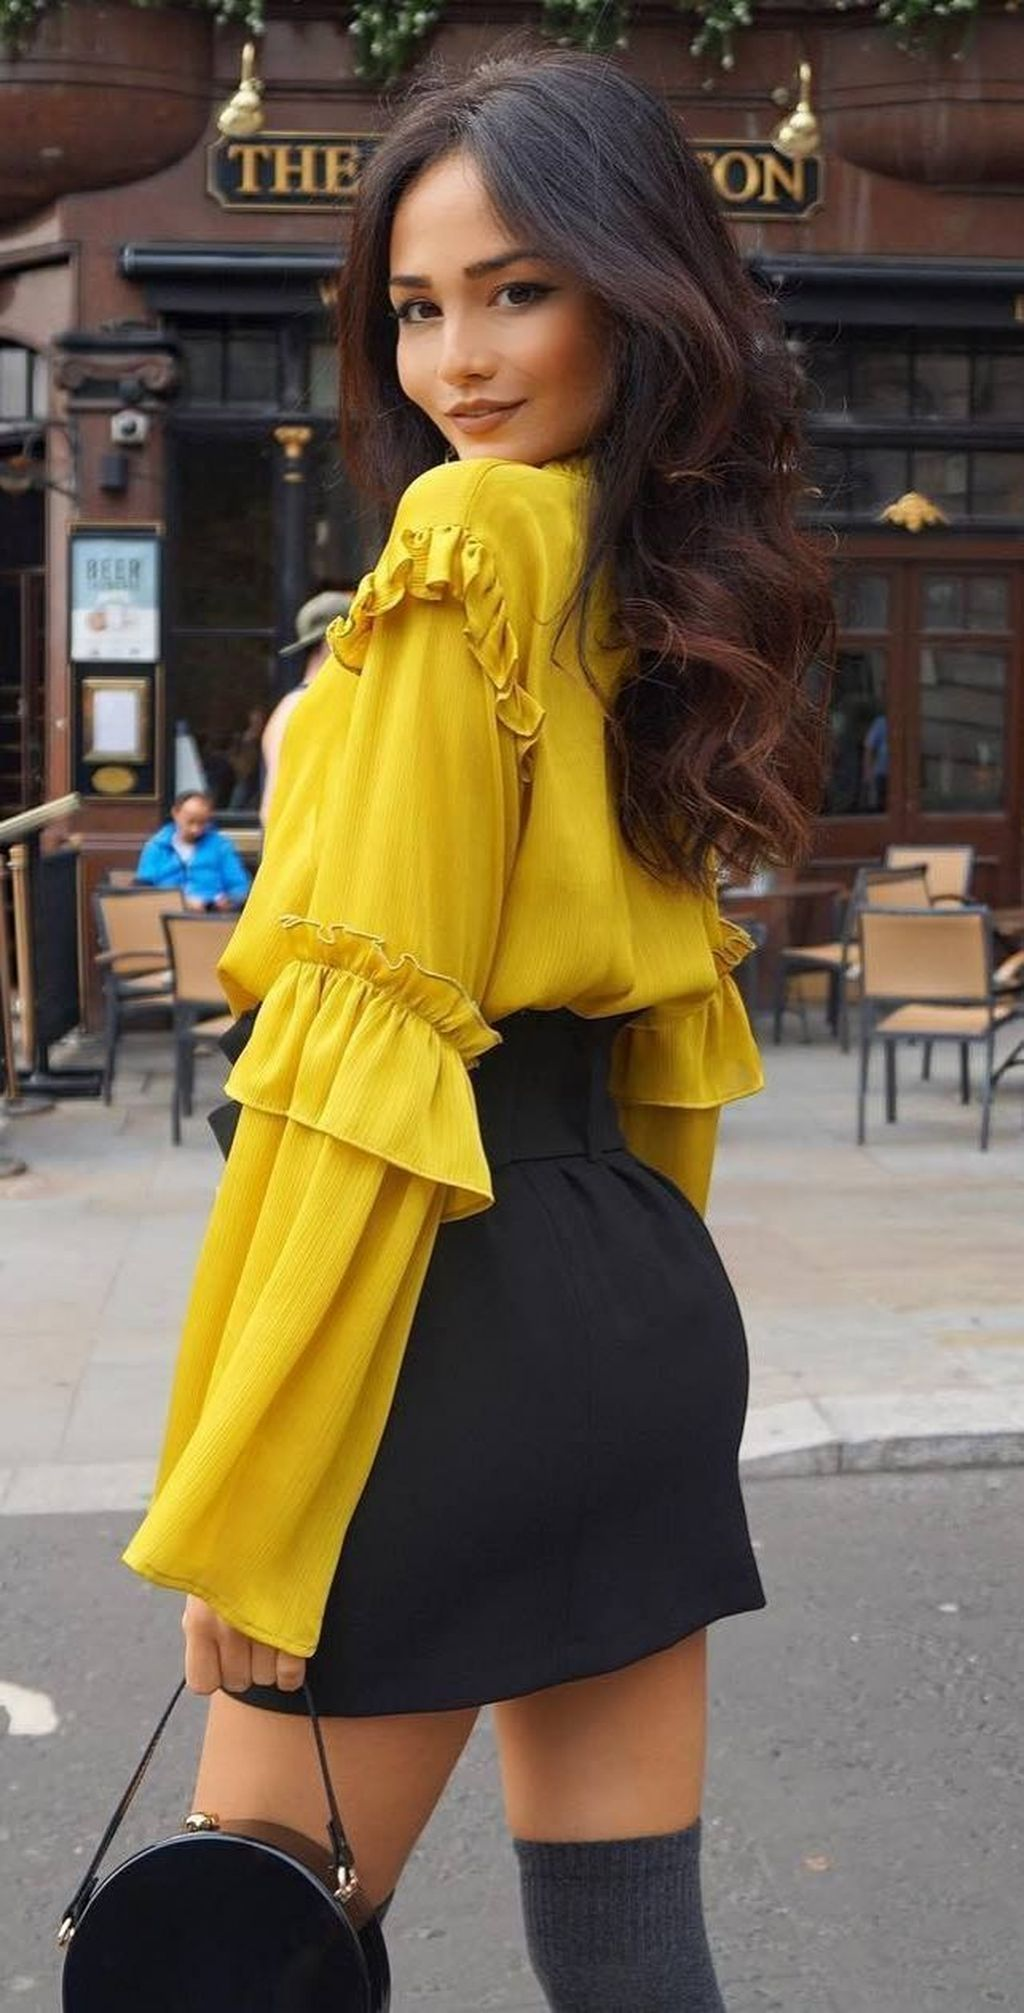 77 YELLOW // YELLOW OUTFITS ideas | yellow outfit, atlantic...